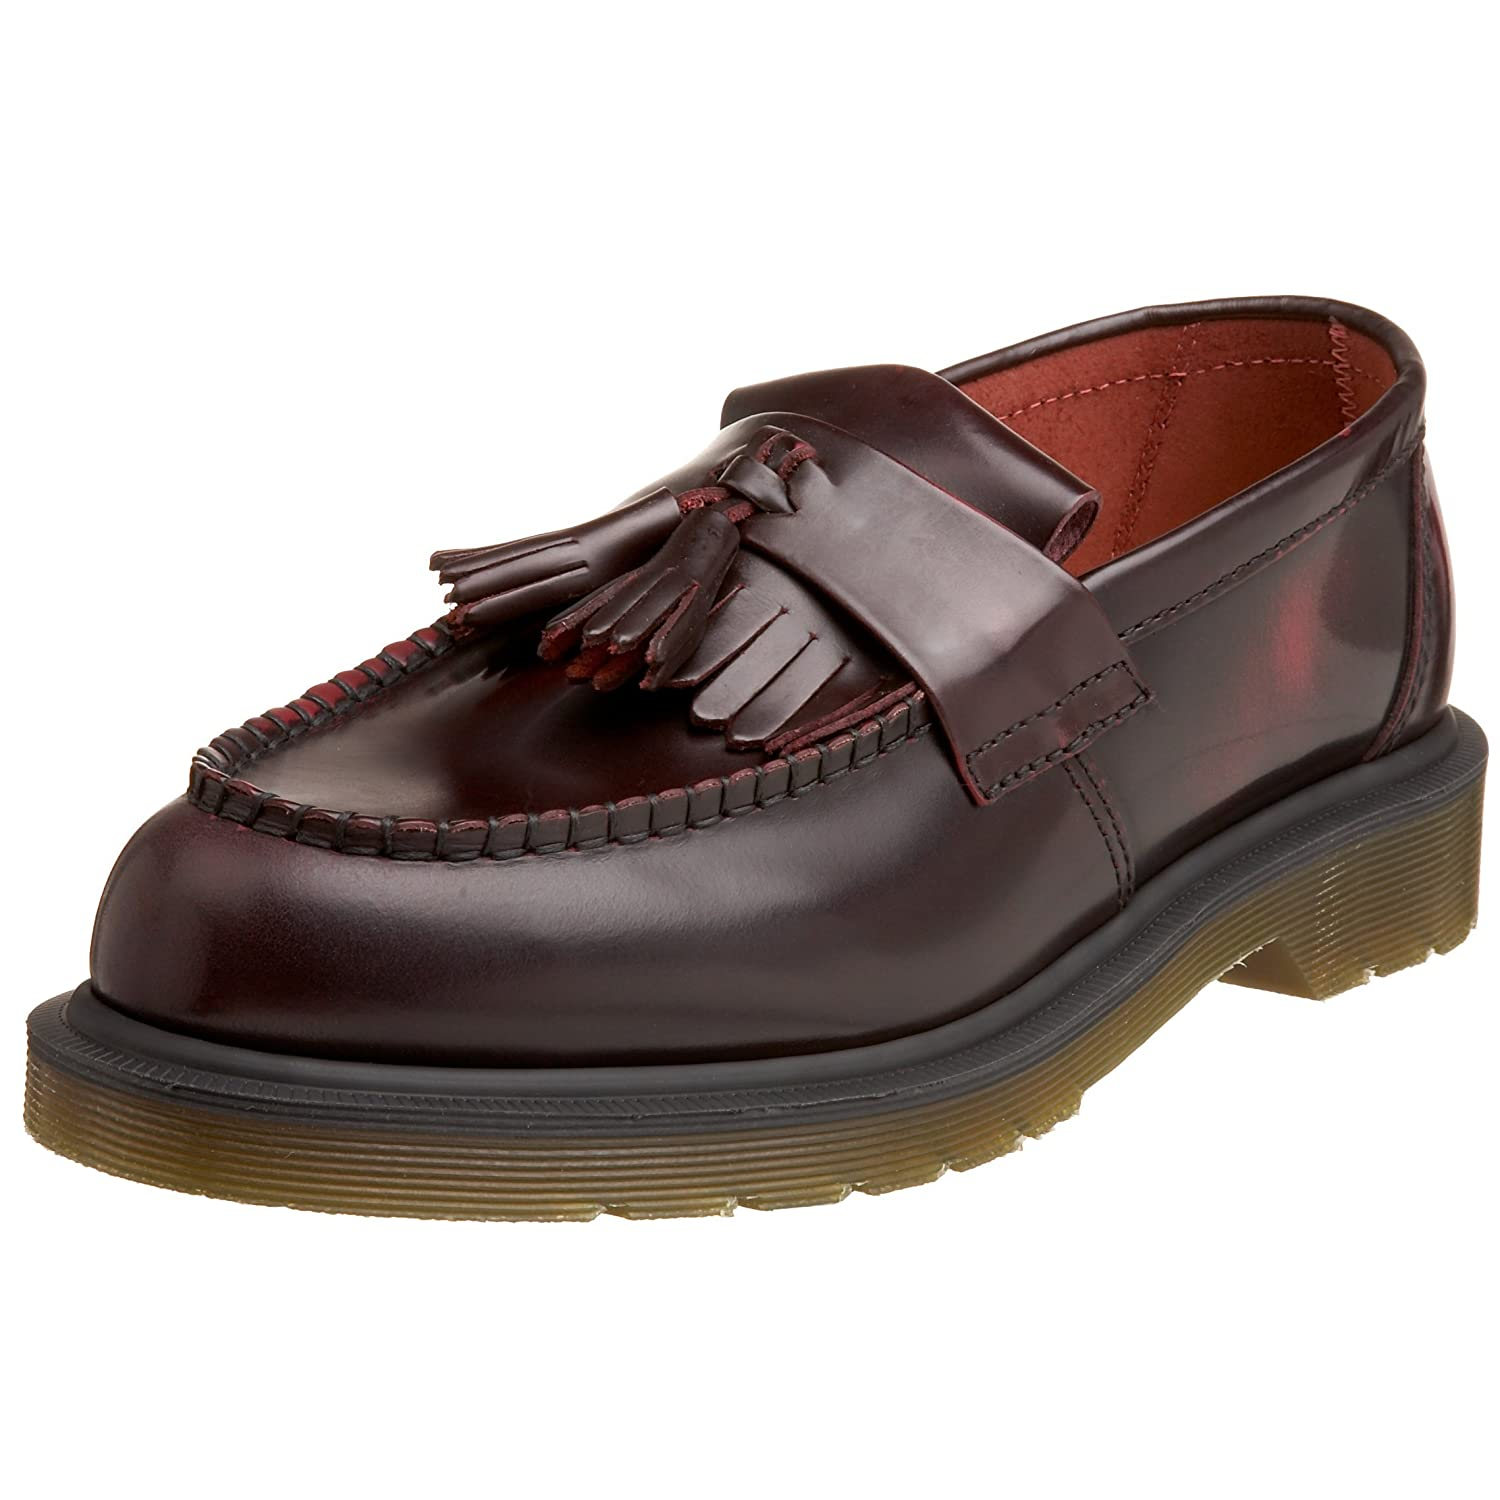 Adrian Black Virginia, Mocassins Femme, Noir (Black), 40 EUDr. Martens